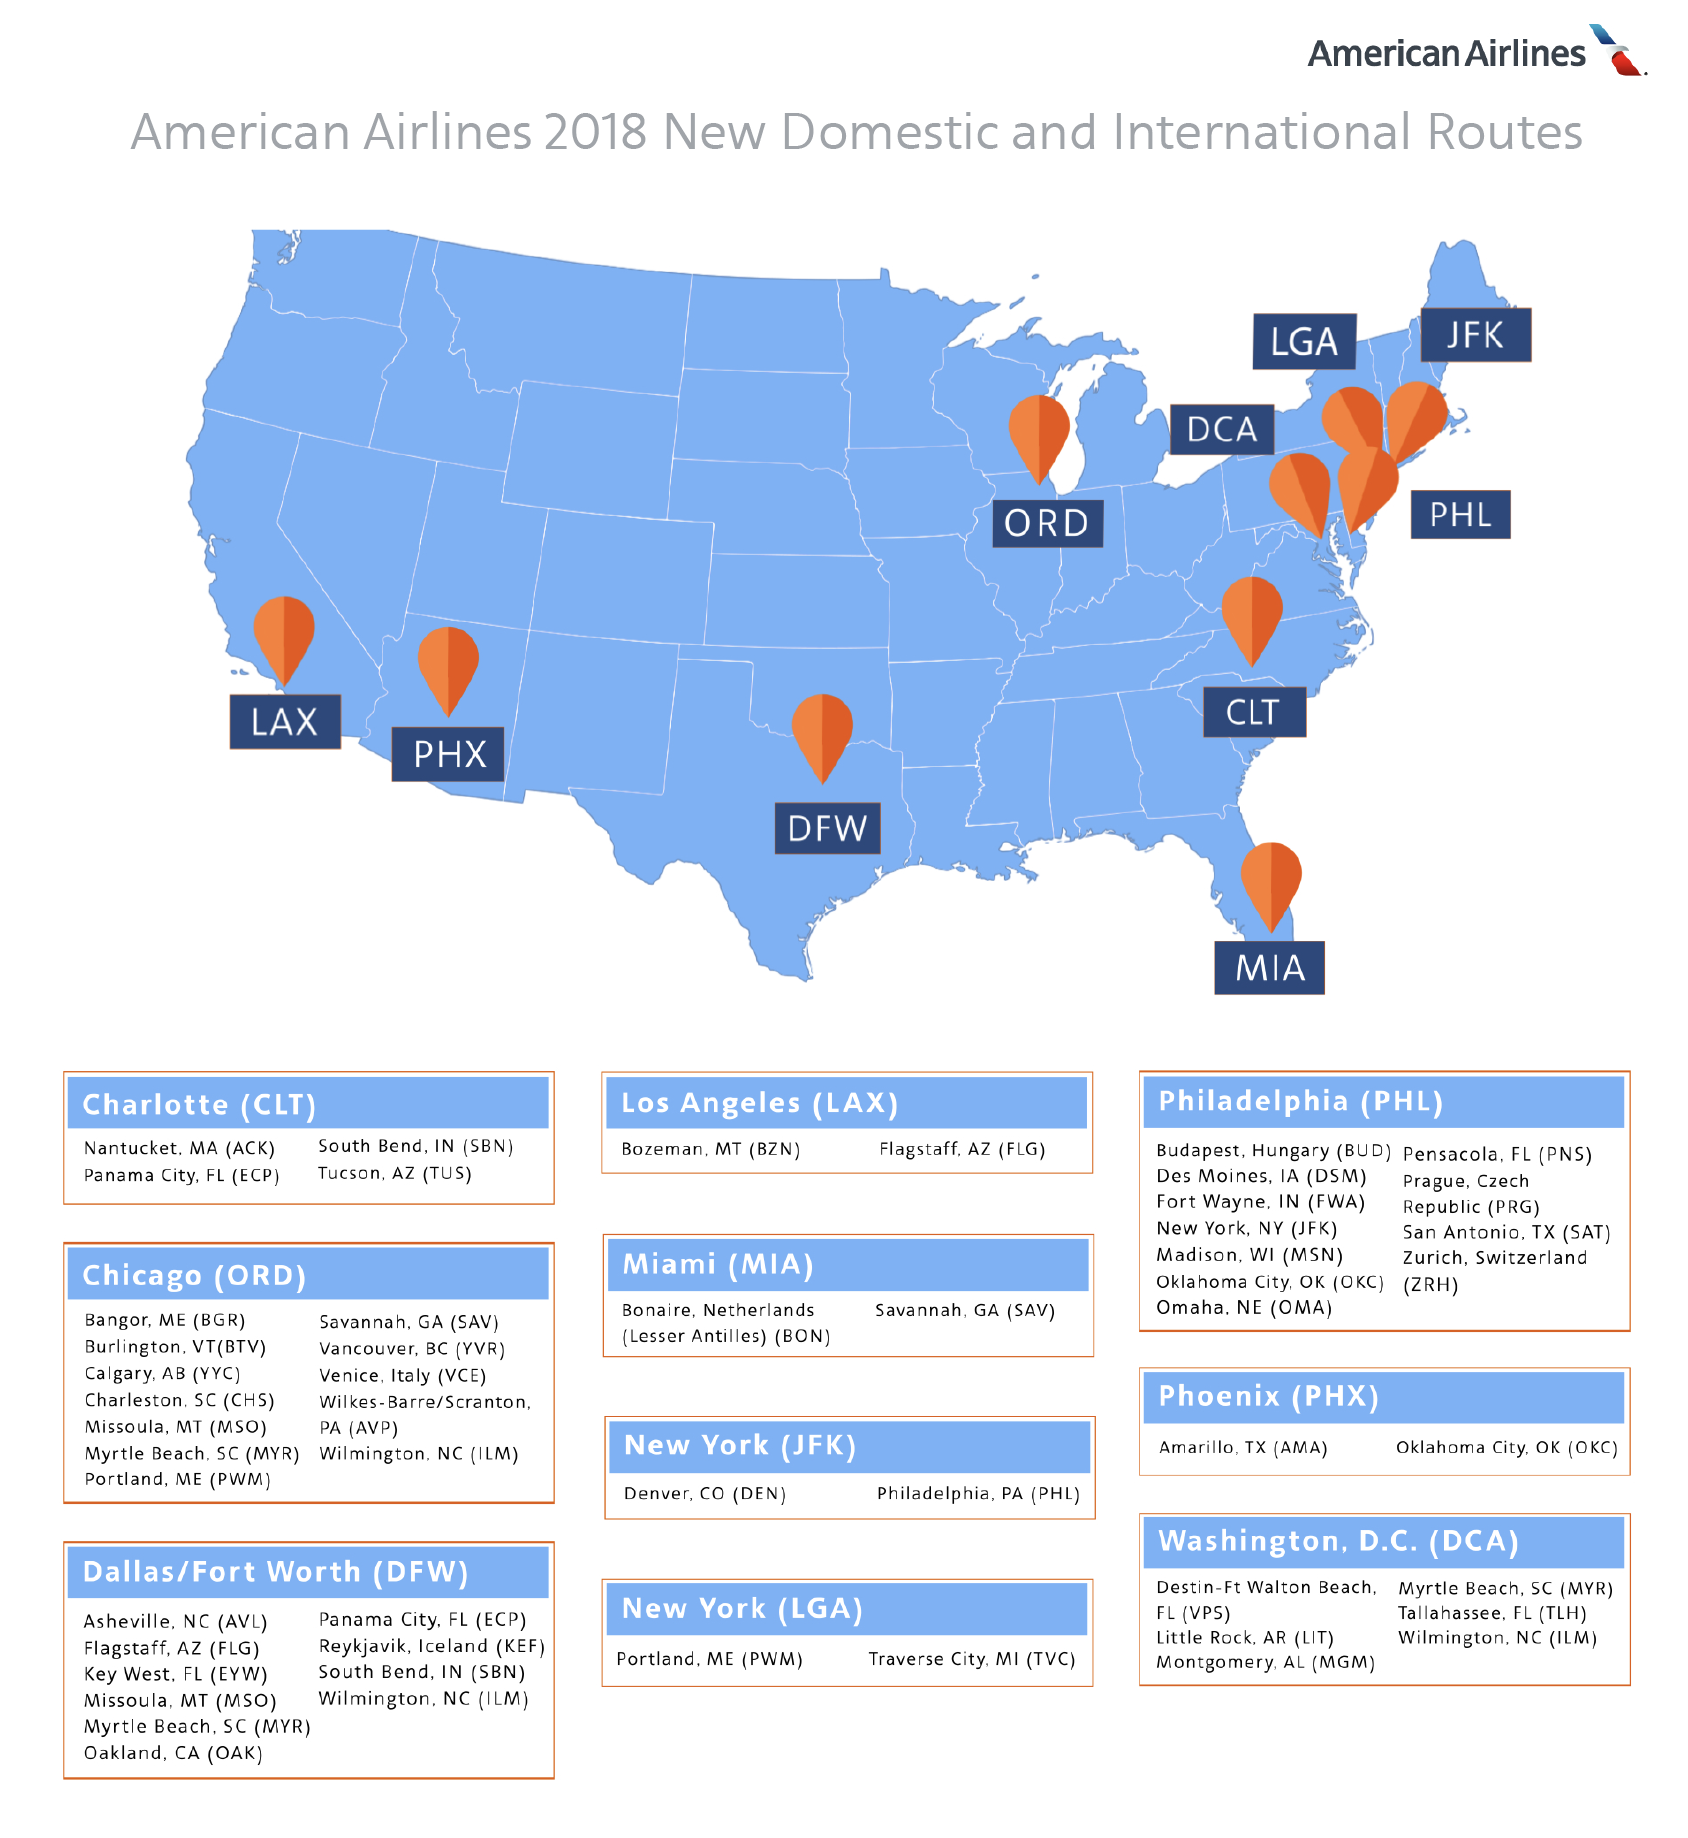 American Airlines 2018 New Domestic and International Route Map